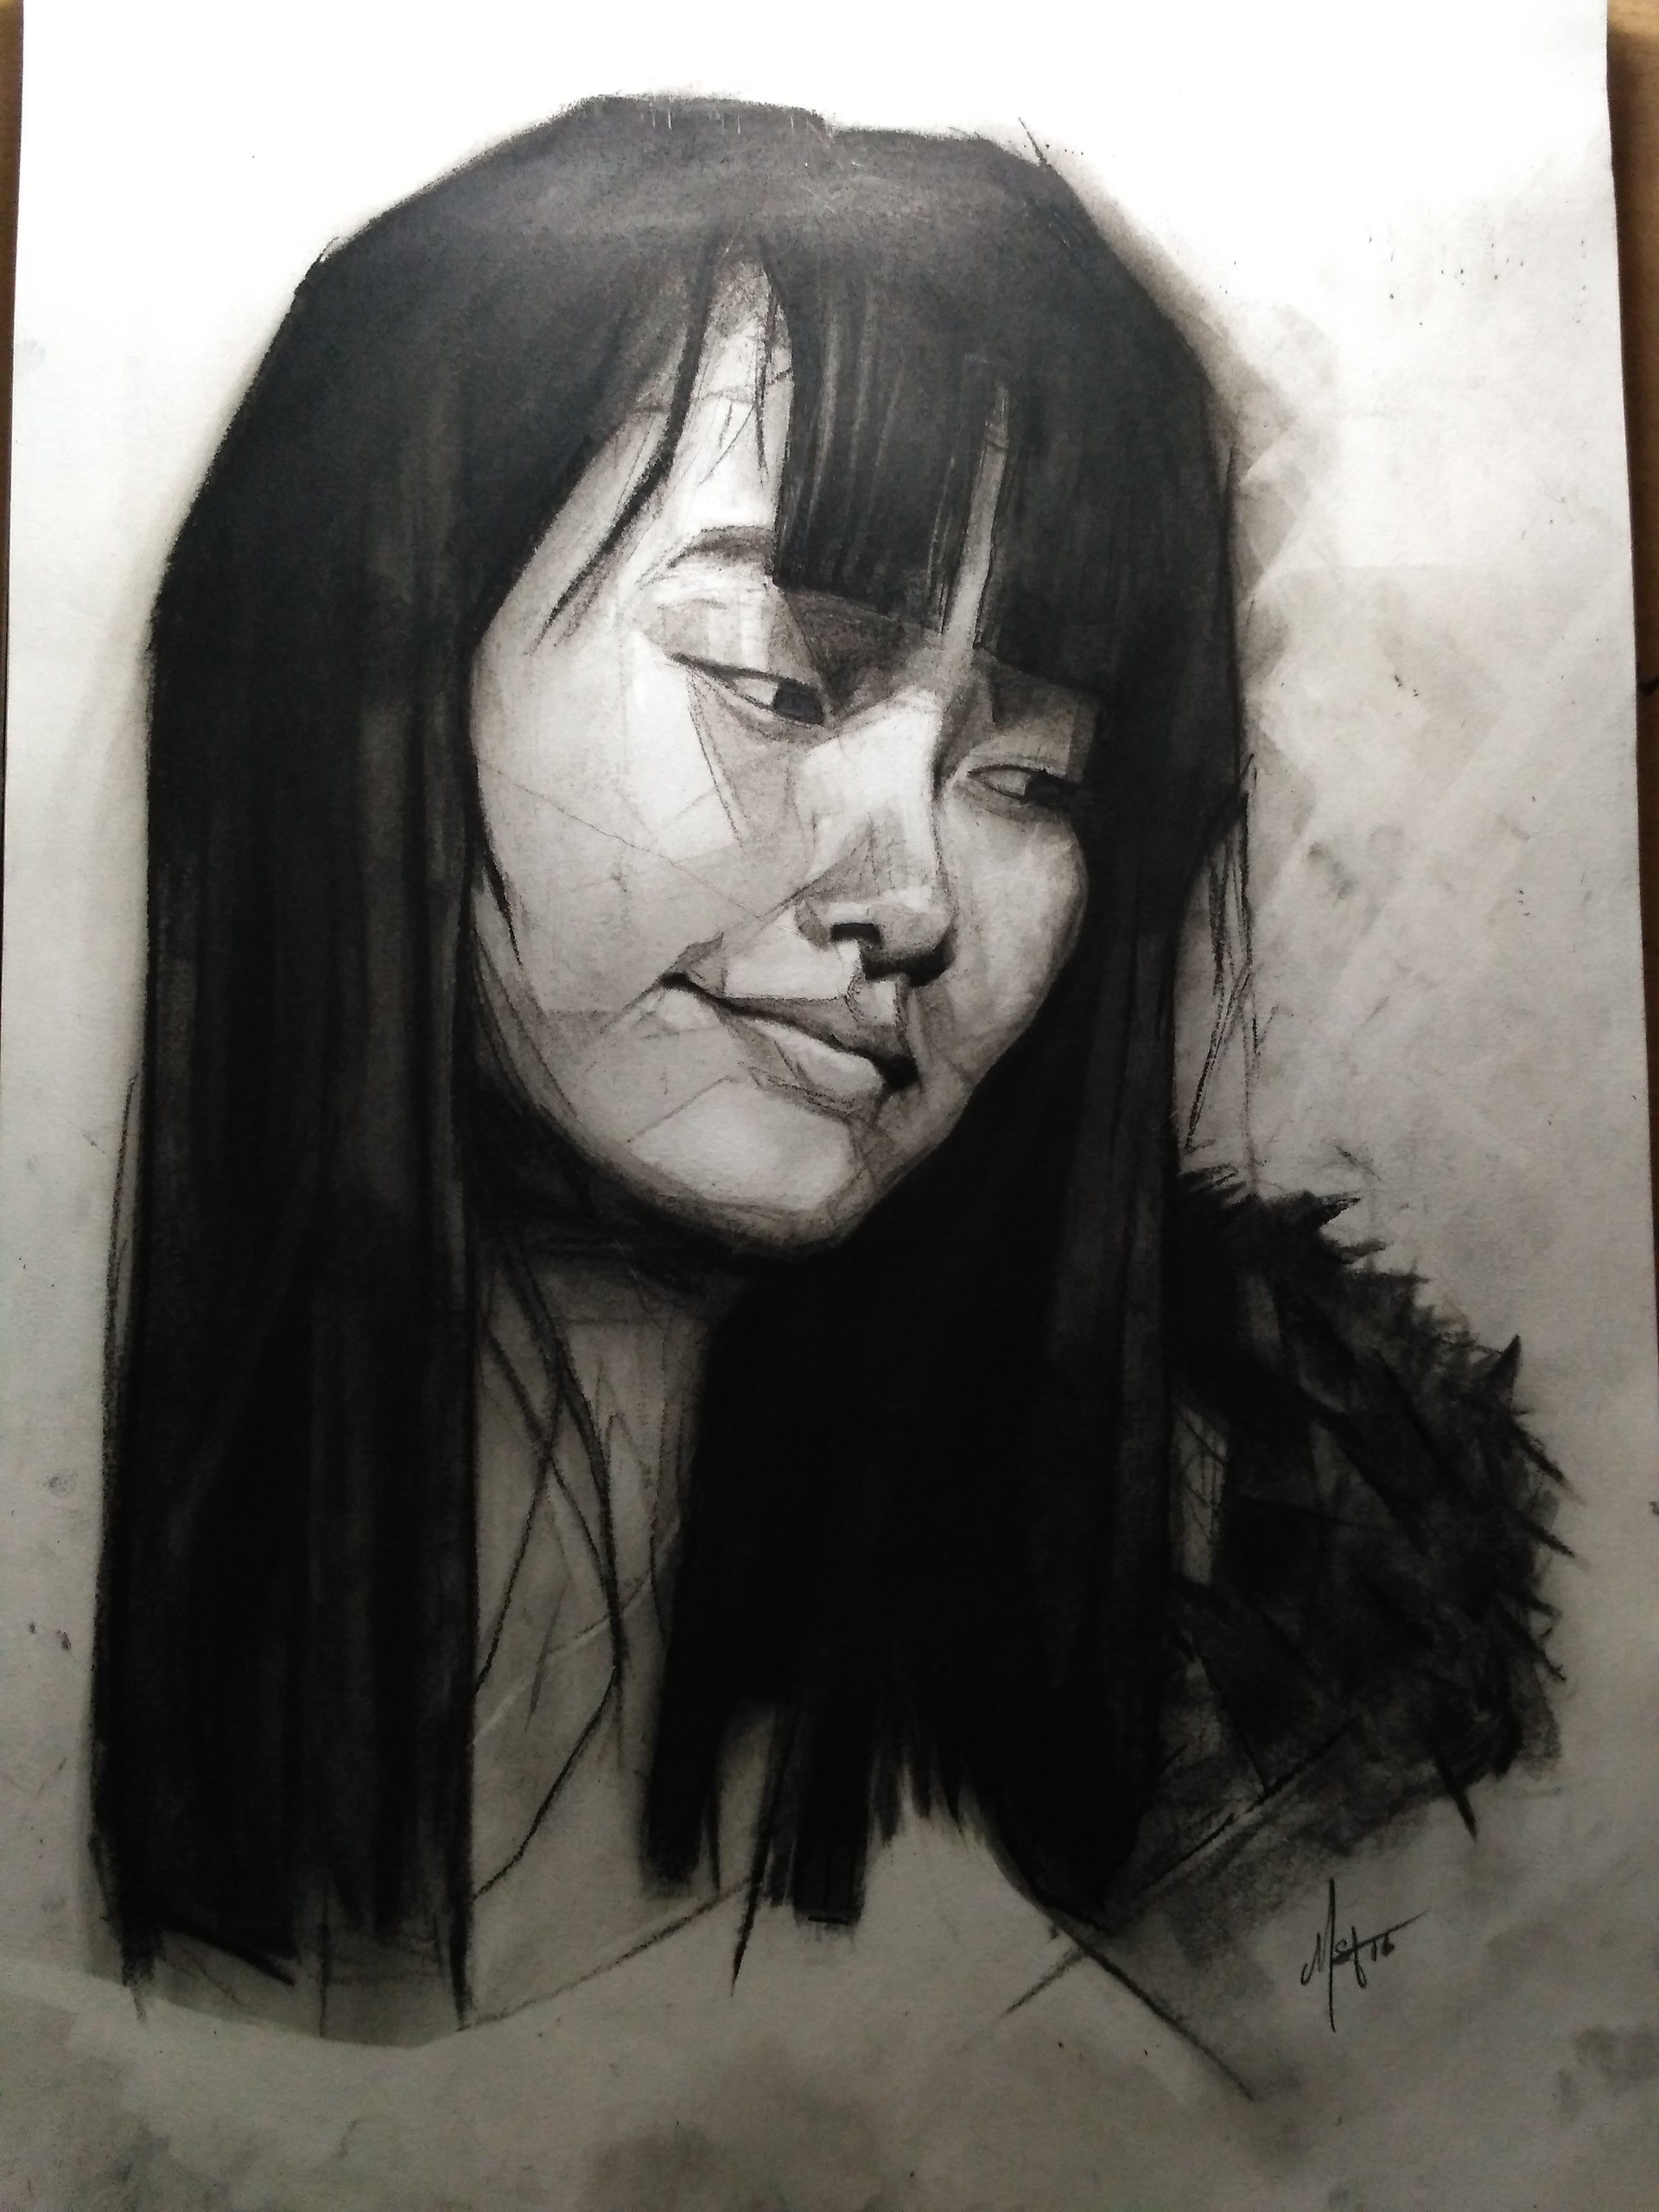 C m s dawngliana youngbully portrait charcoal